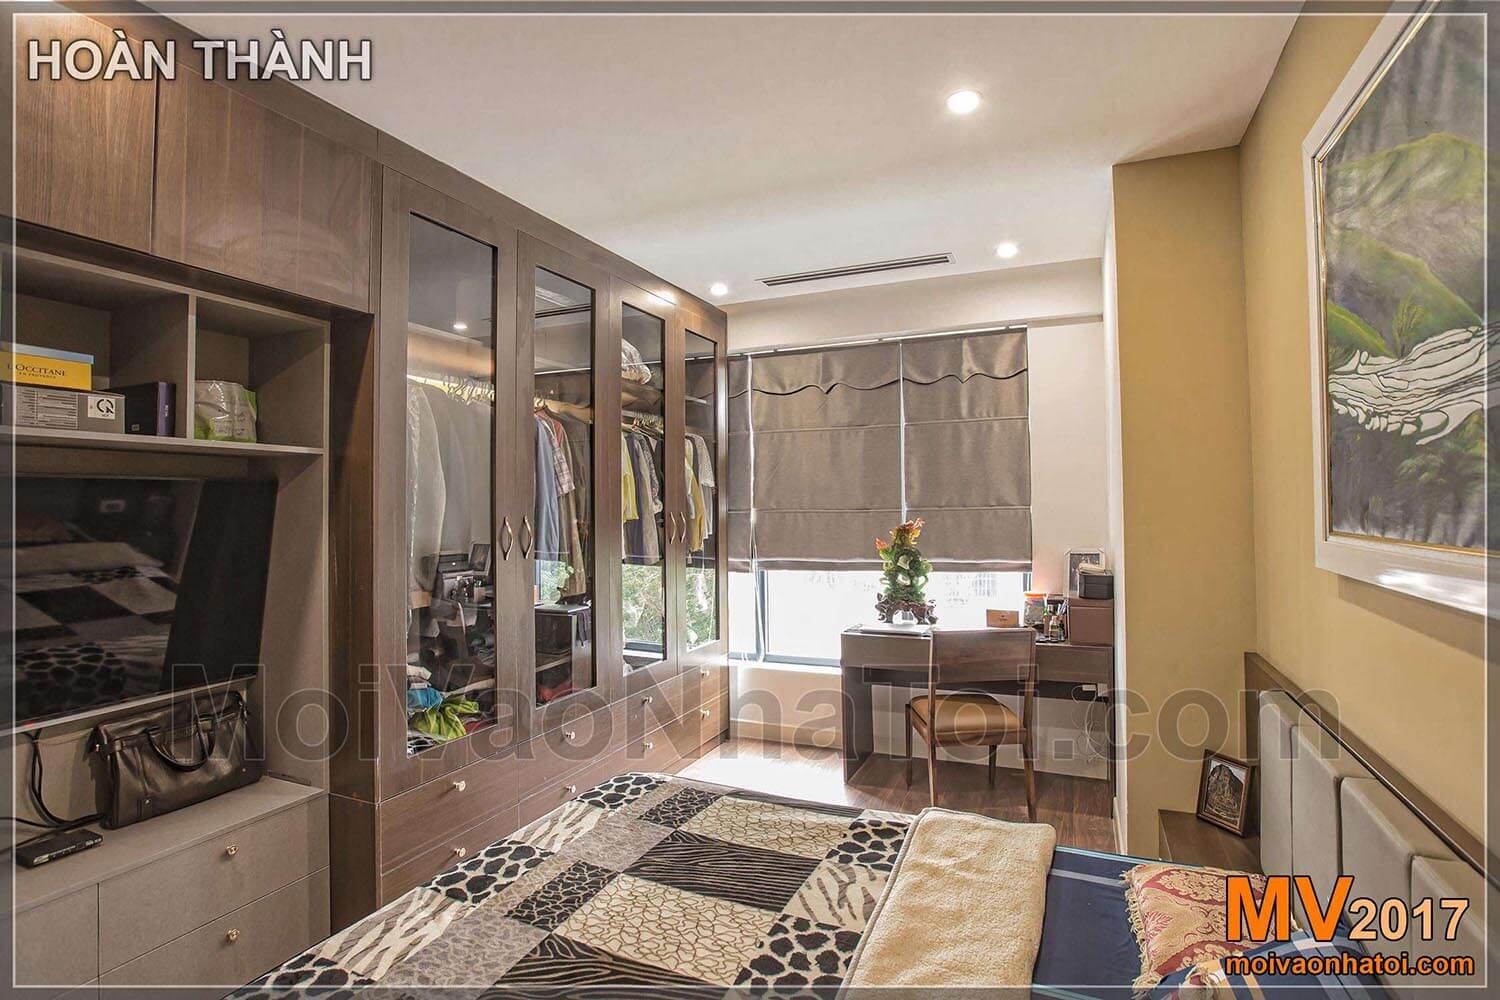 design and construction of the interior of Imperia Garden apartment apartment at 203 Nguyen Huy Tuong